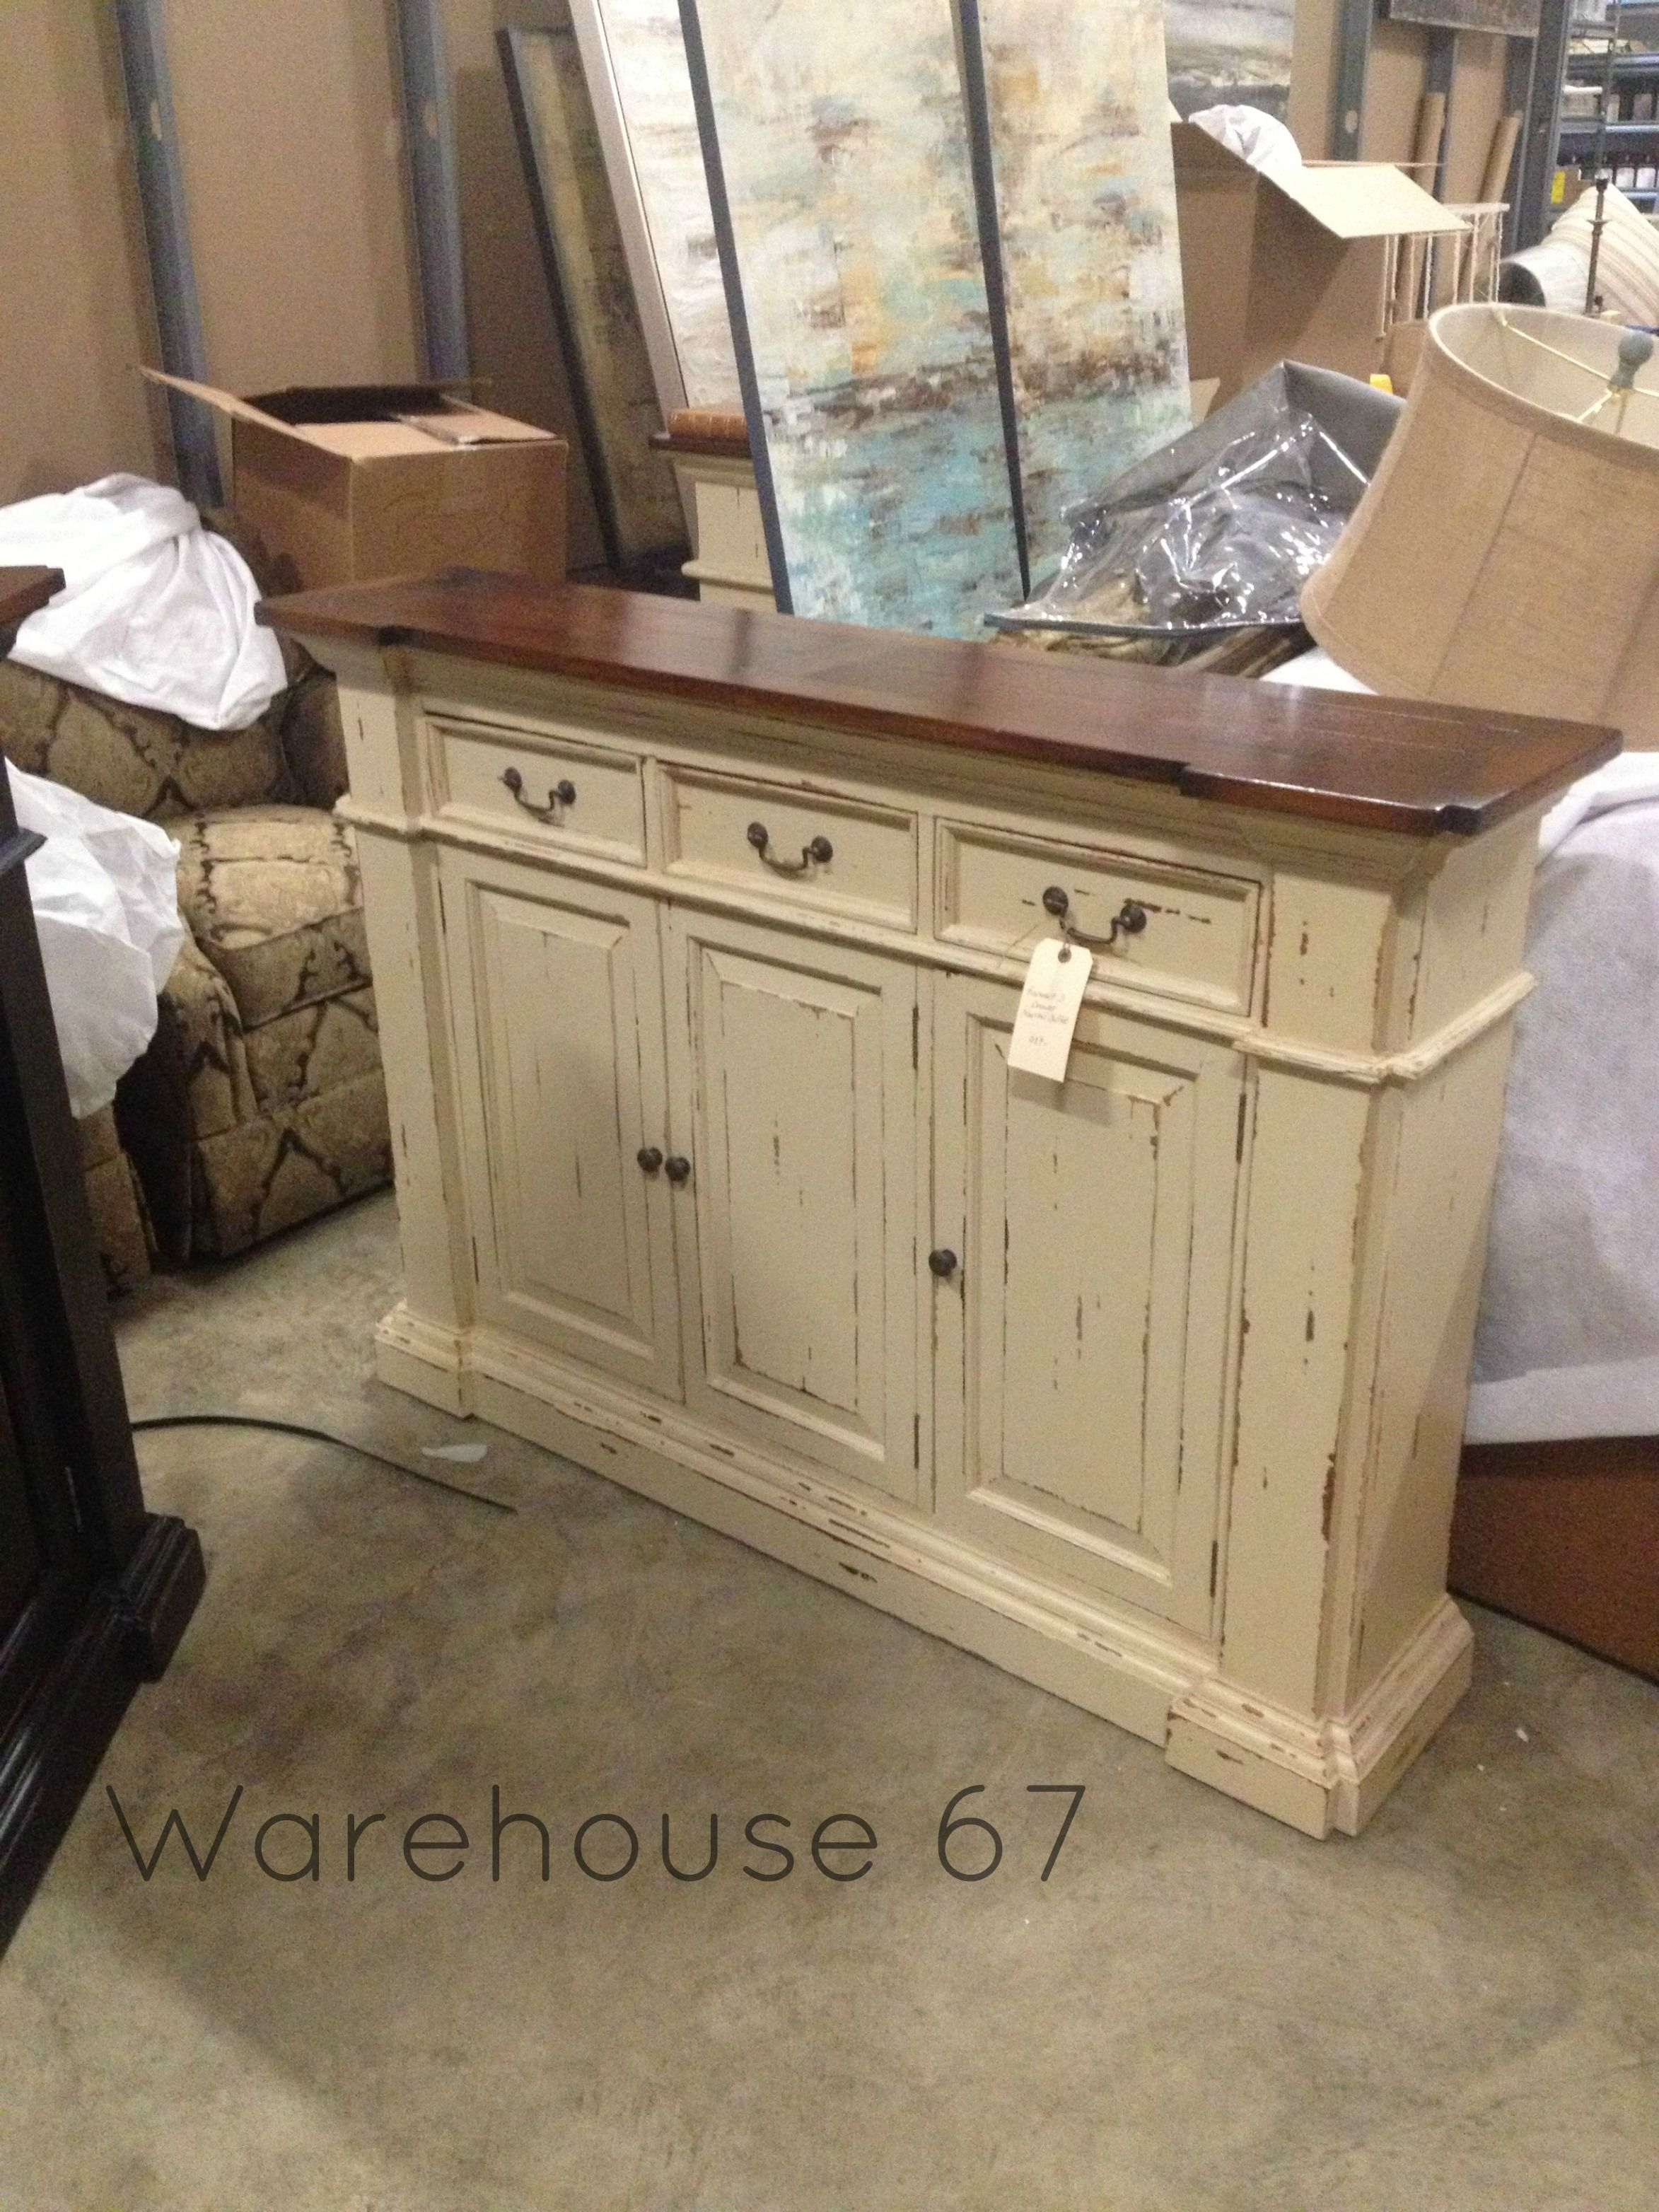 Roosevelt 3 Drawer Narrow Buffet Here At Warehouse 67! Only Regarding Industrial Style 3 Drawer Buffets (View 25 of 30)